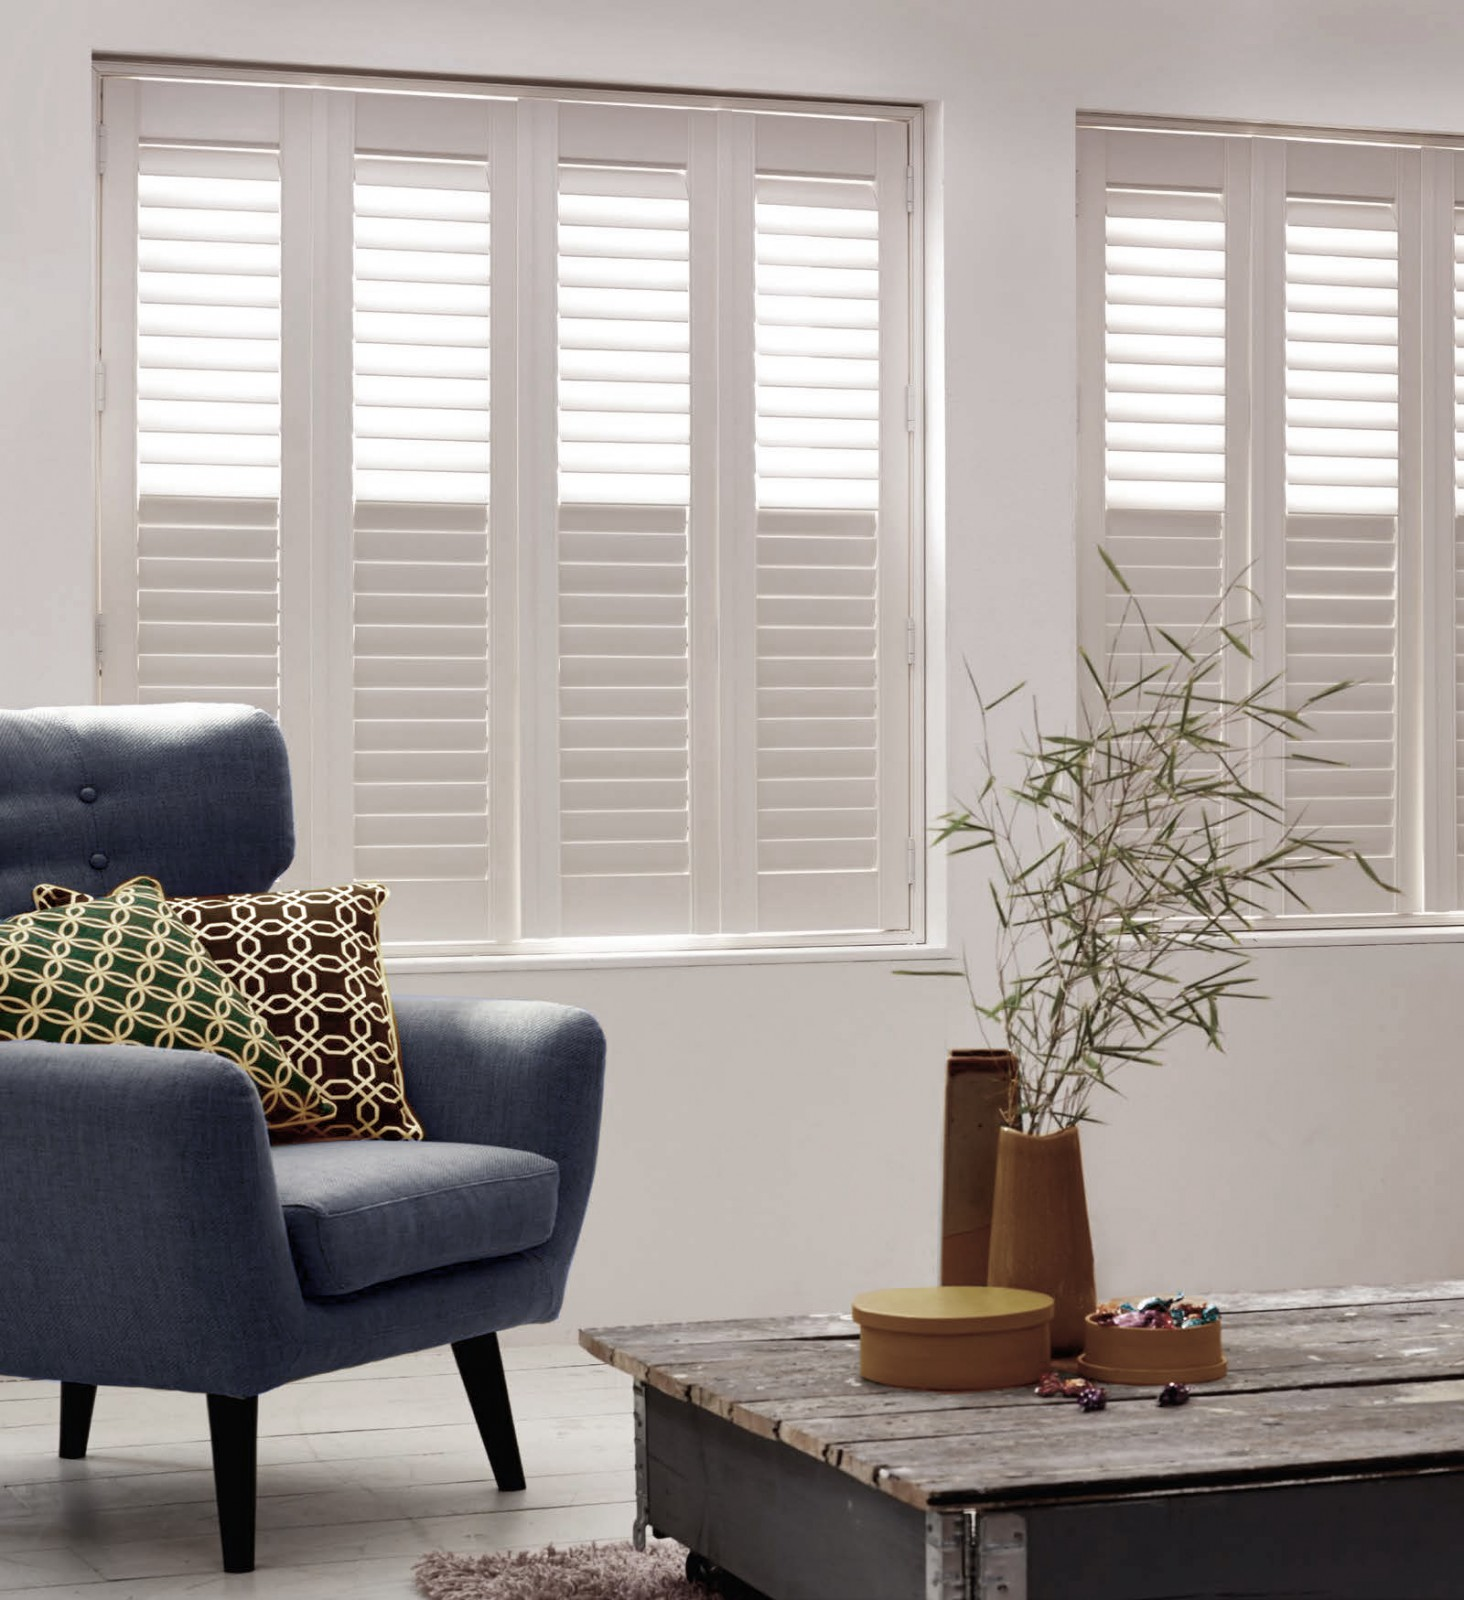 Scandi Style How To Create A Scandi Style Room With Wooden Shutters